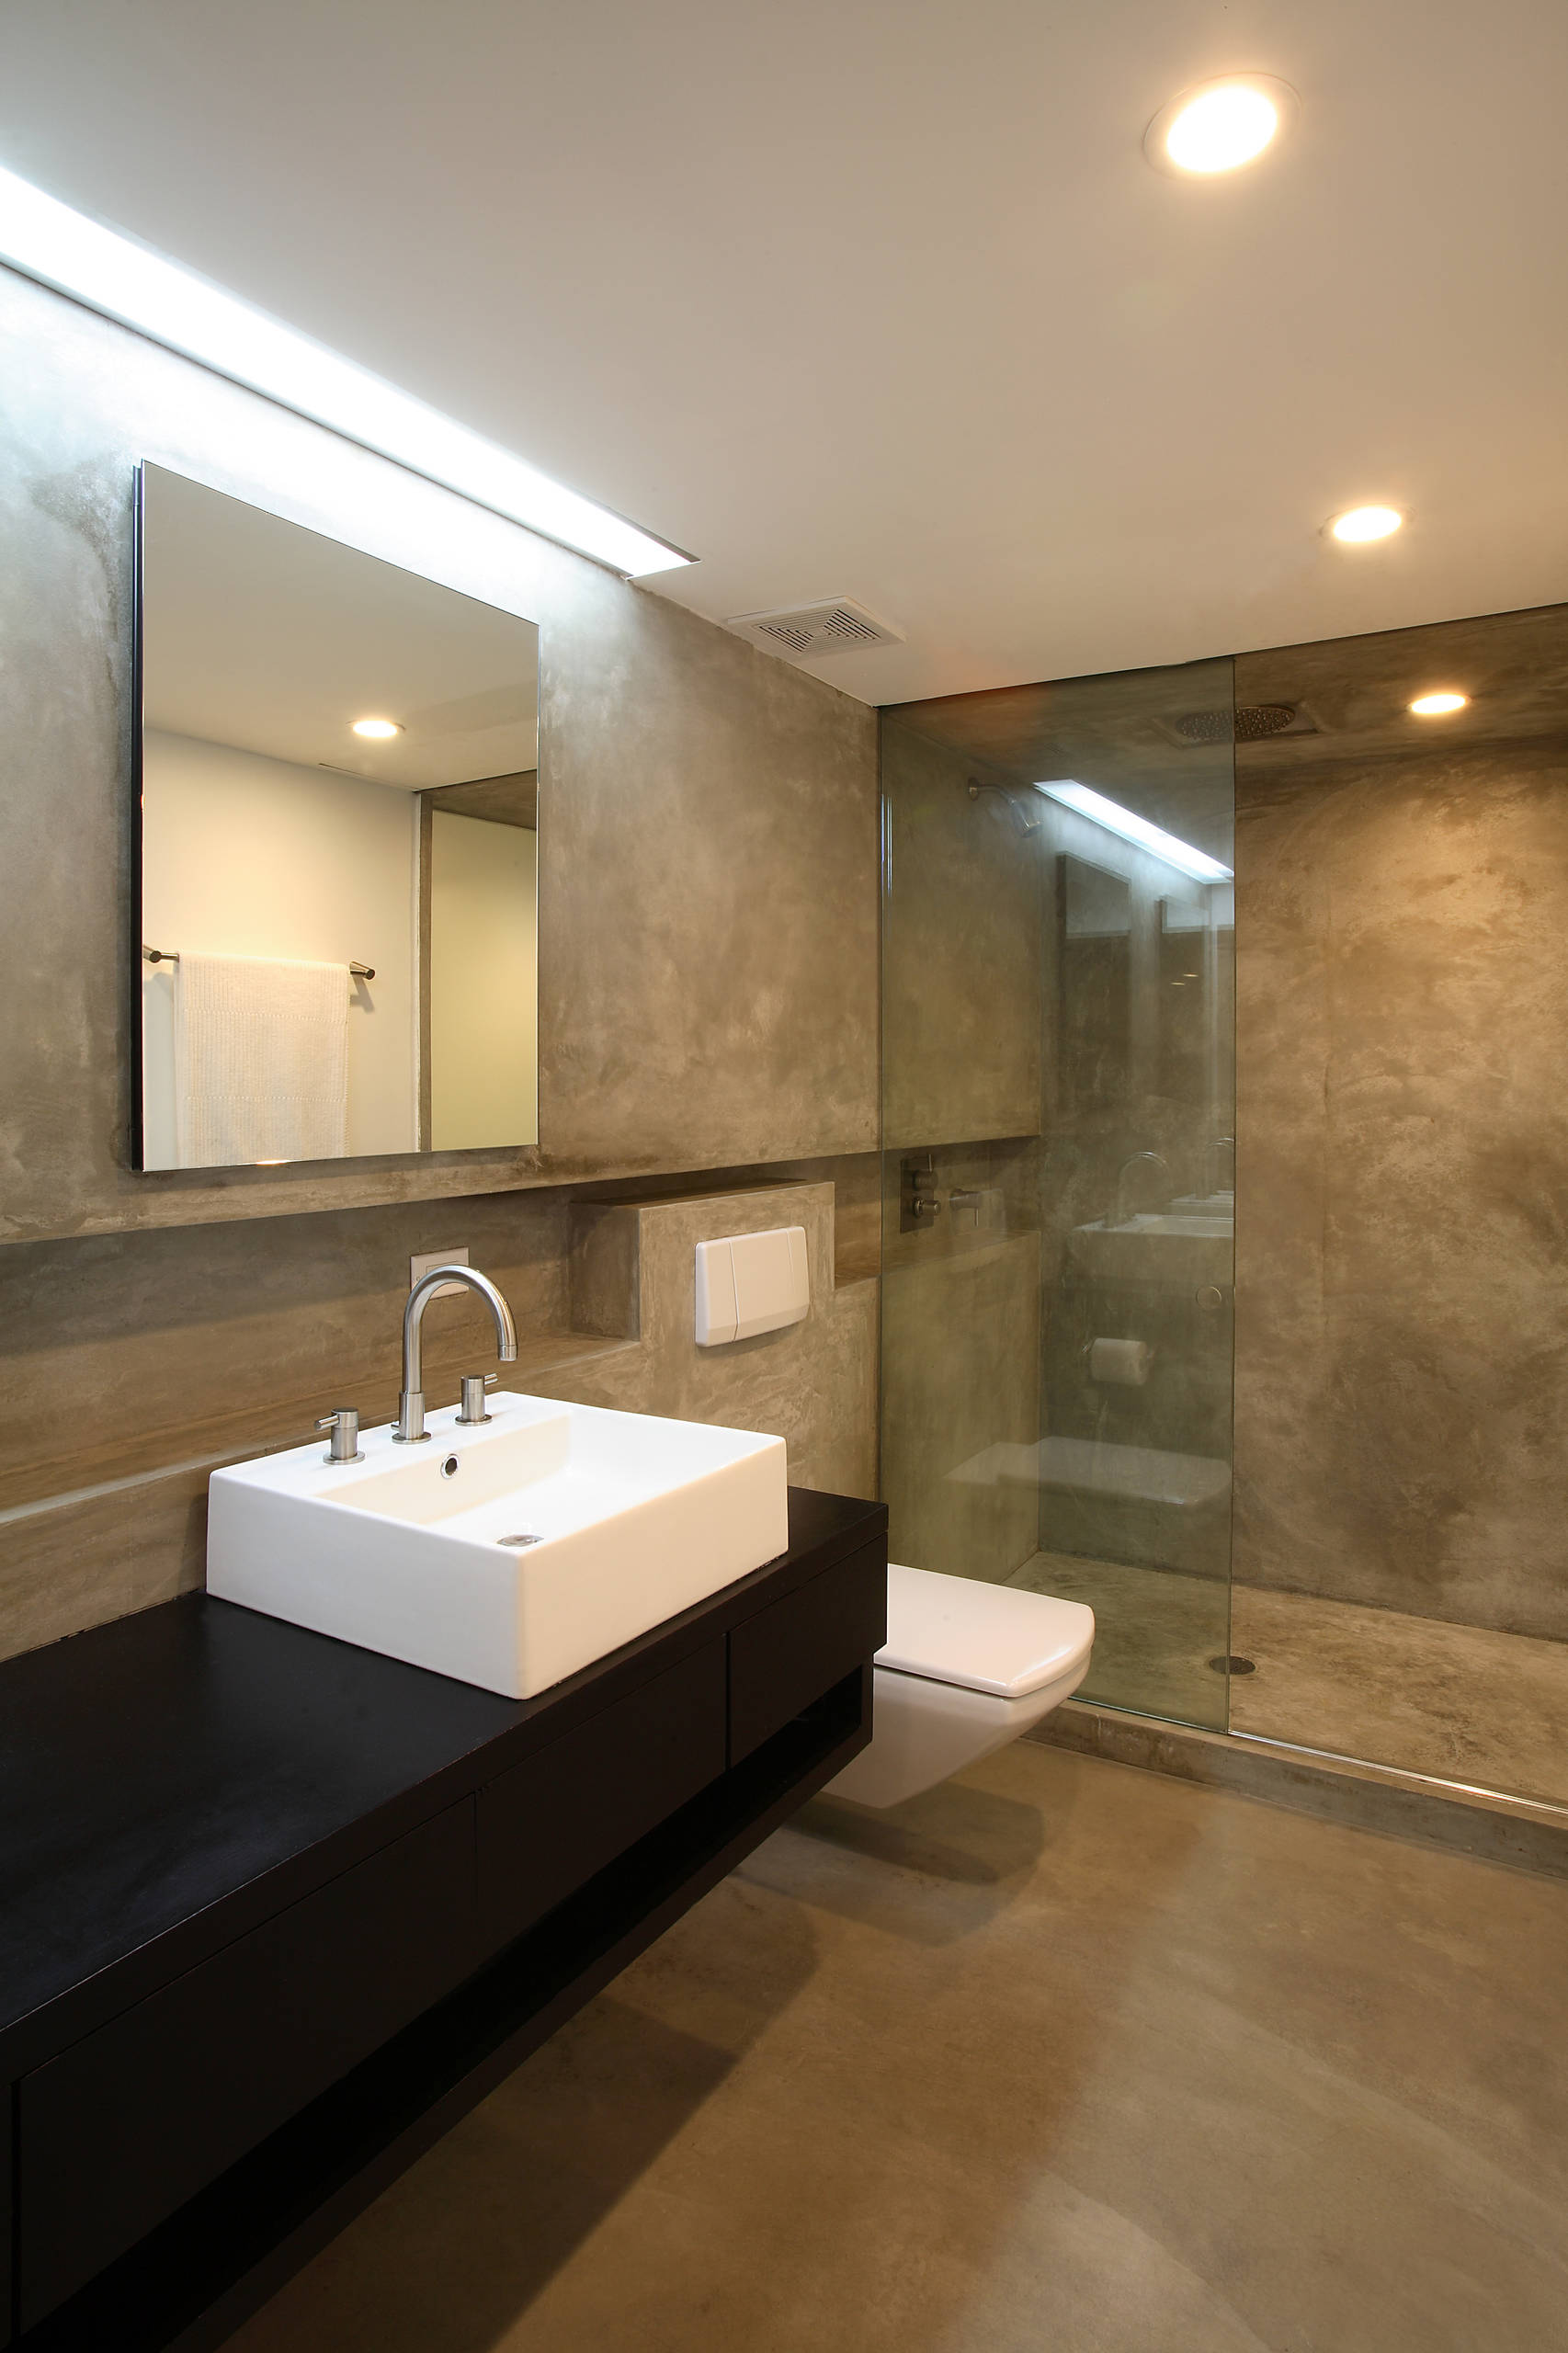 75 Beautiful Beige Tile Bathroom With Black Countertops Pictures Ideas January 2021 Houzz